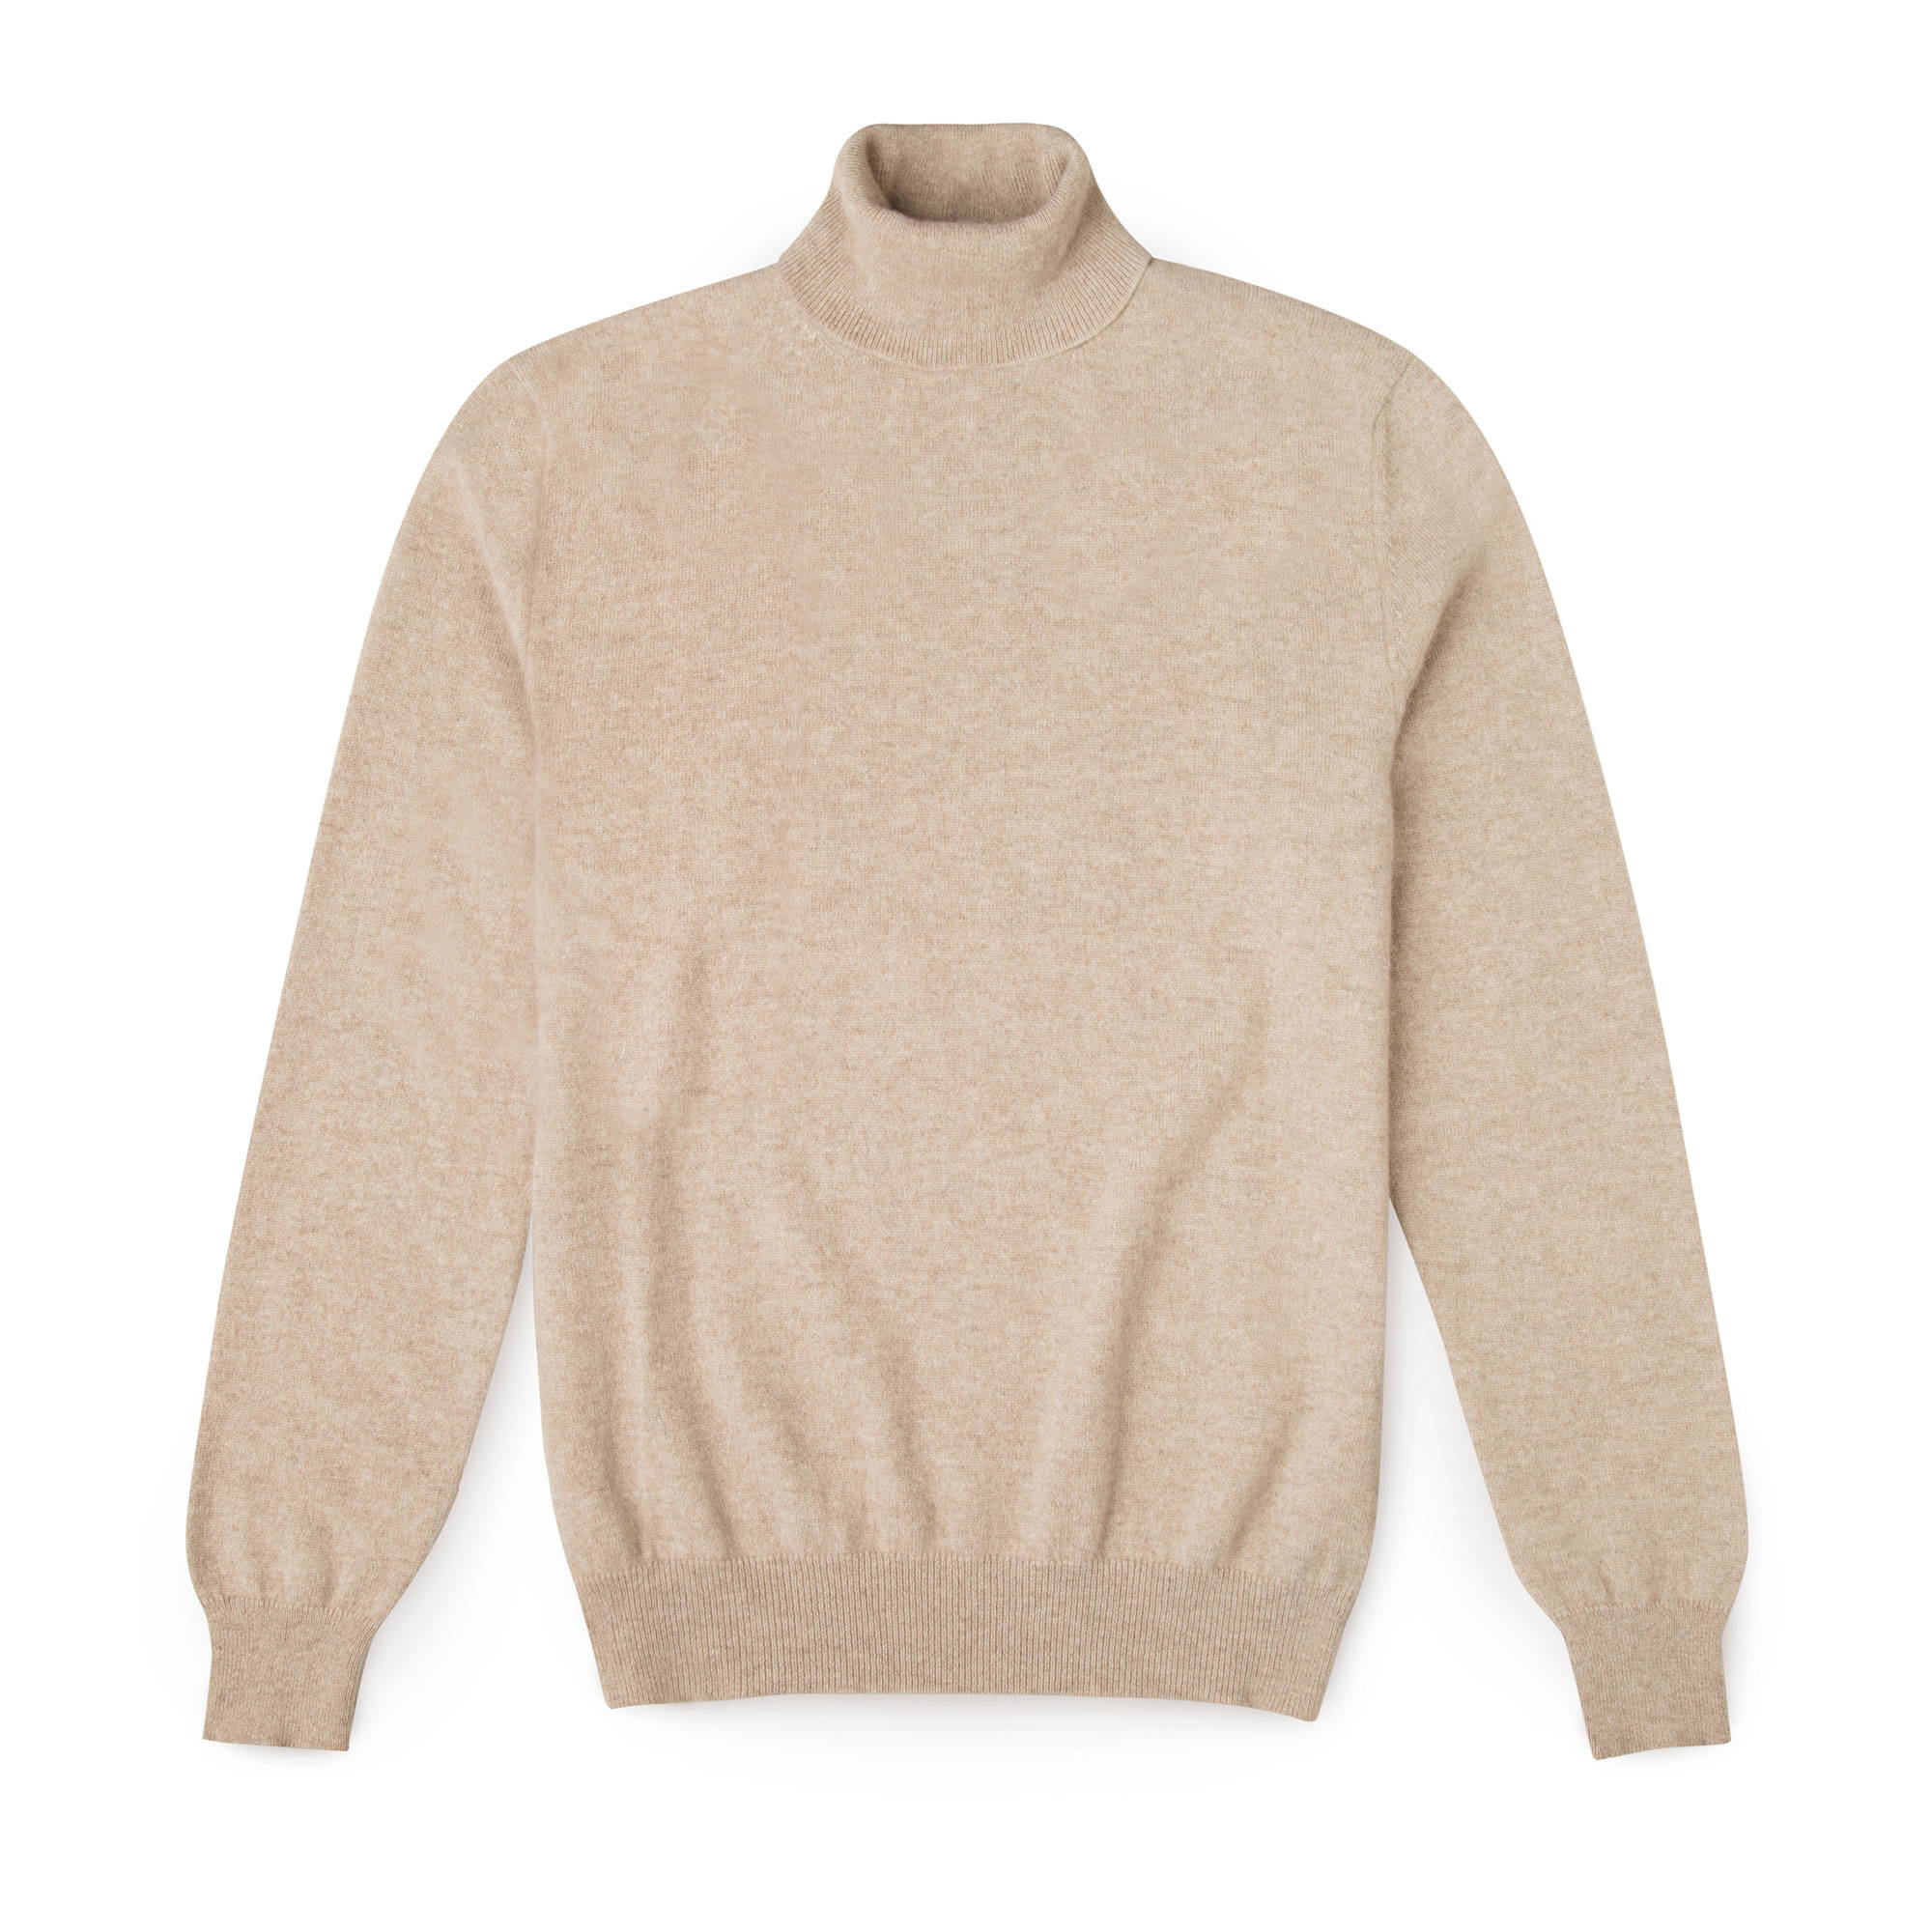 Luca Faloni Camel Beige Roll Neck Made in Italy